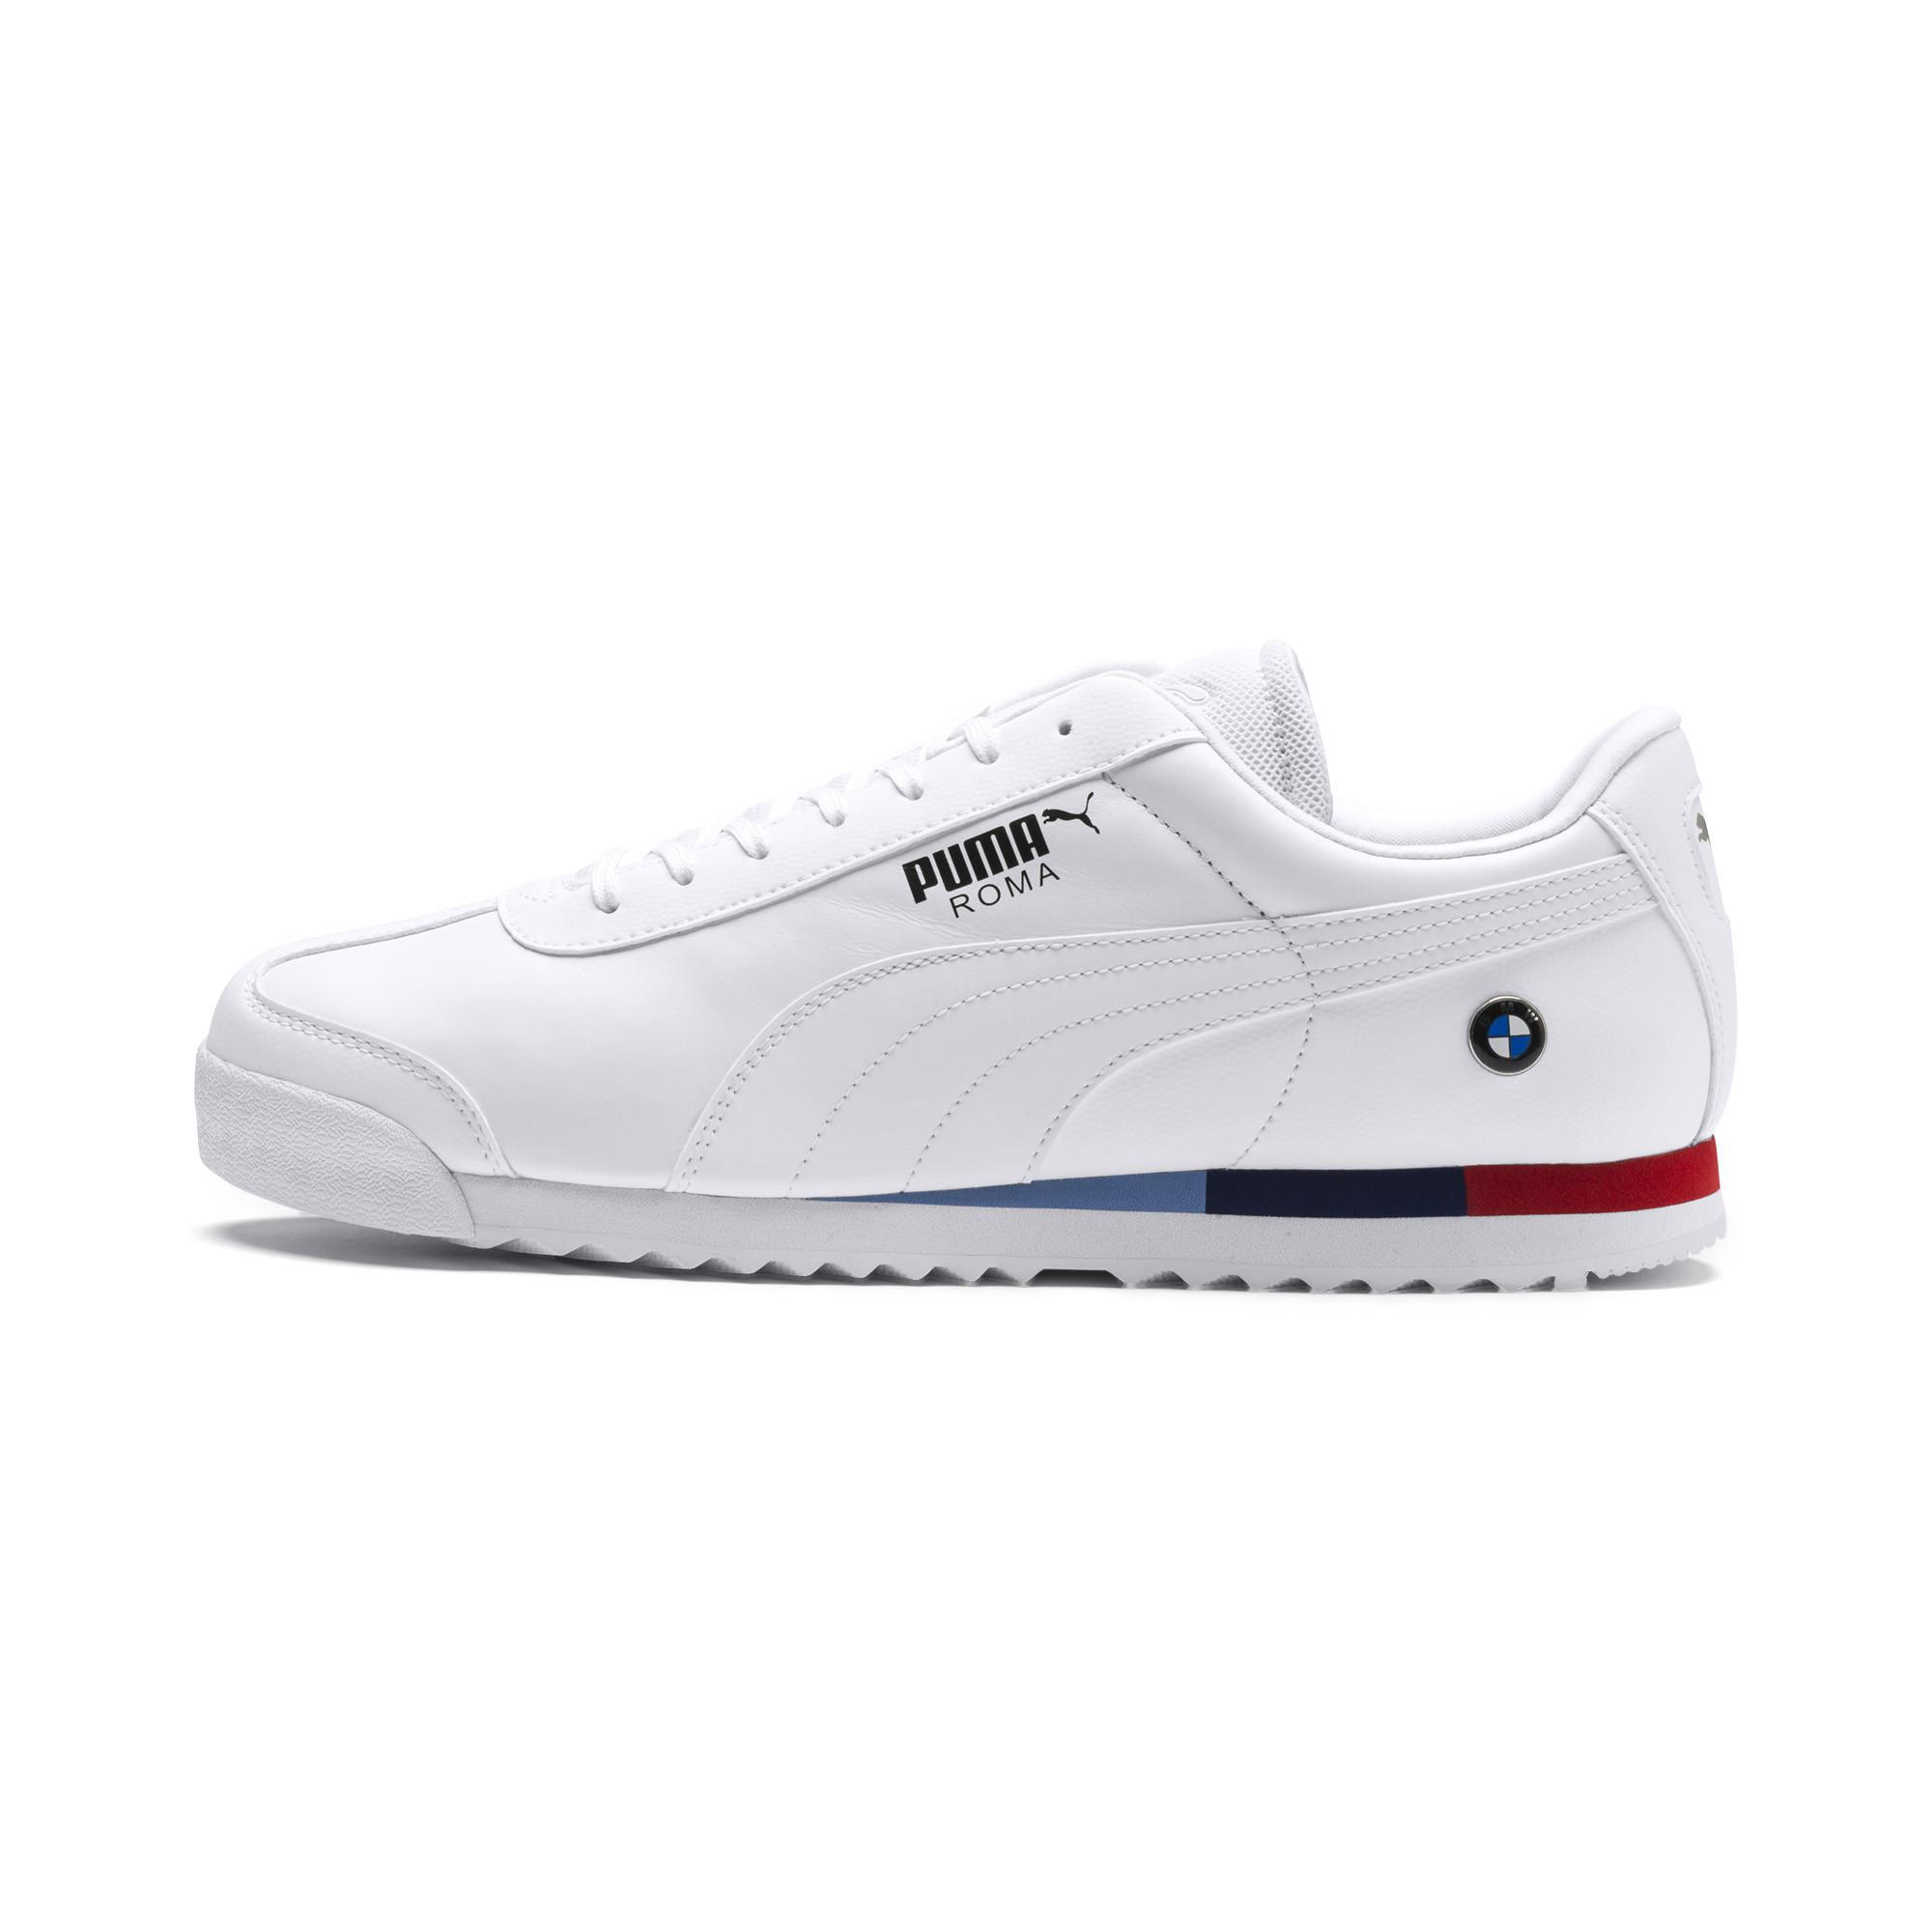 db3a02d06823b5 Lyst - PUMA Bmw Mms Roma Men s Sneakers in White for Men